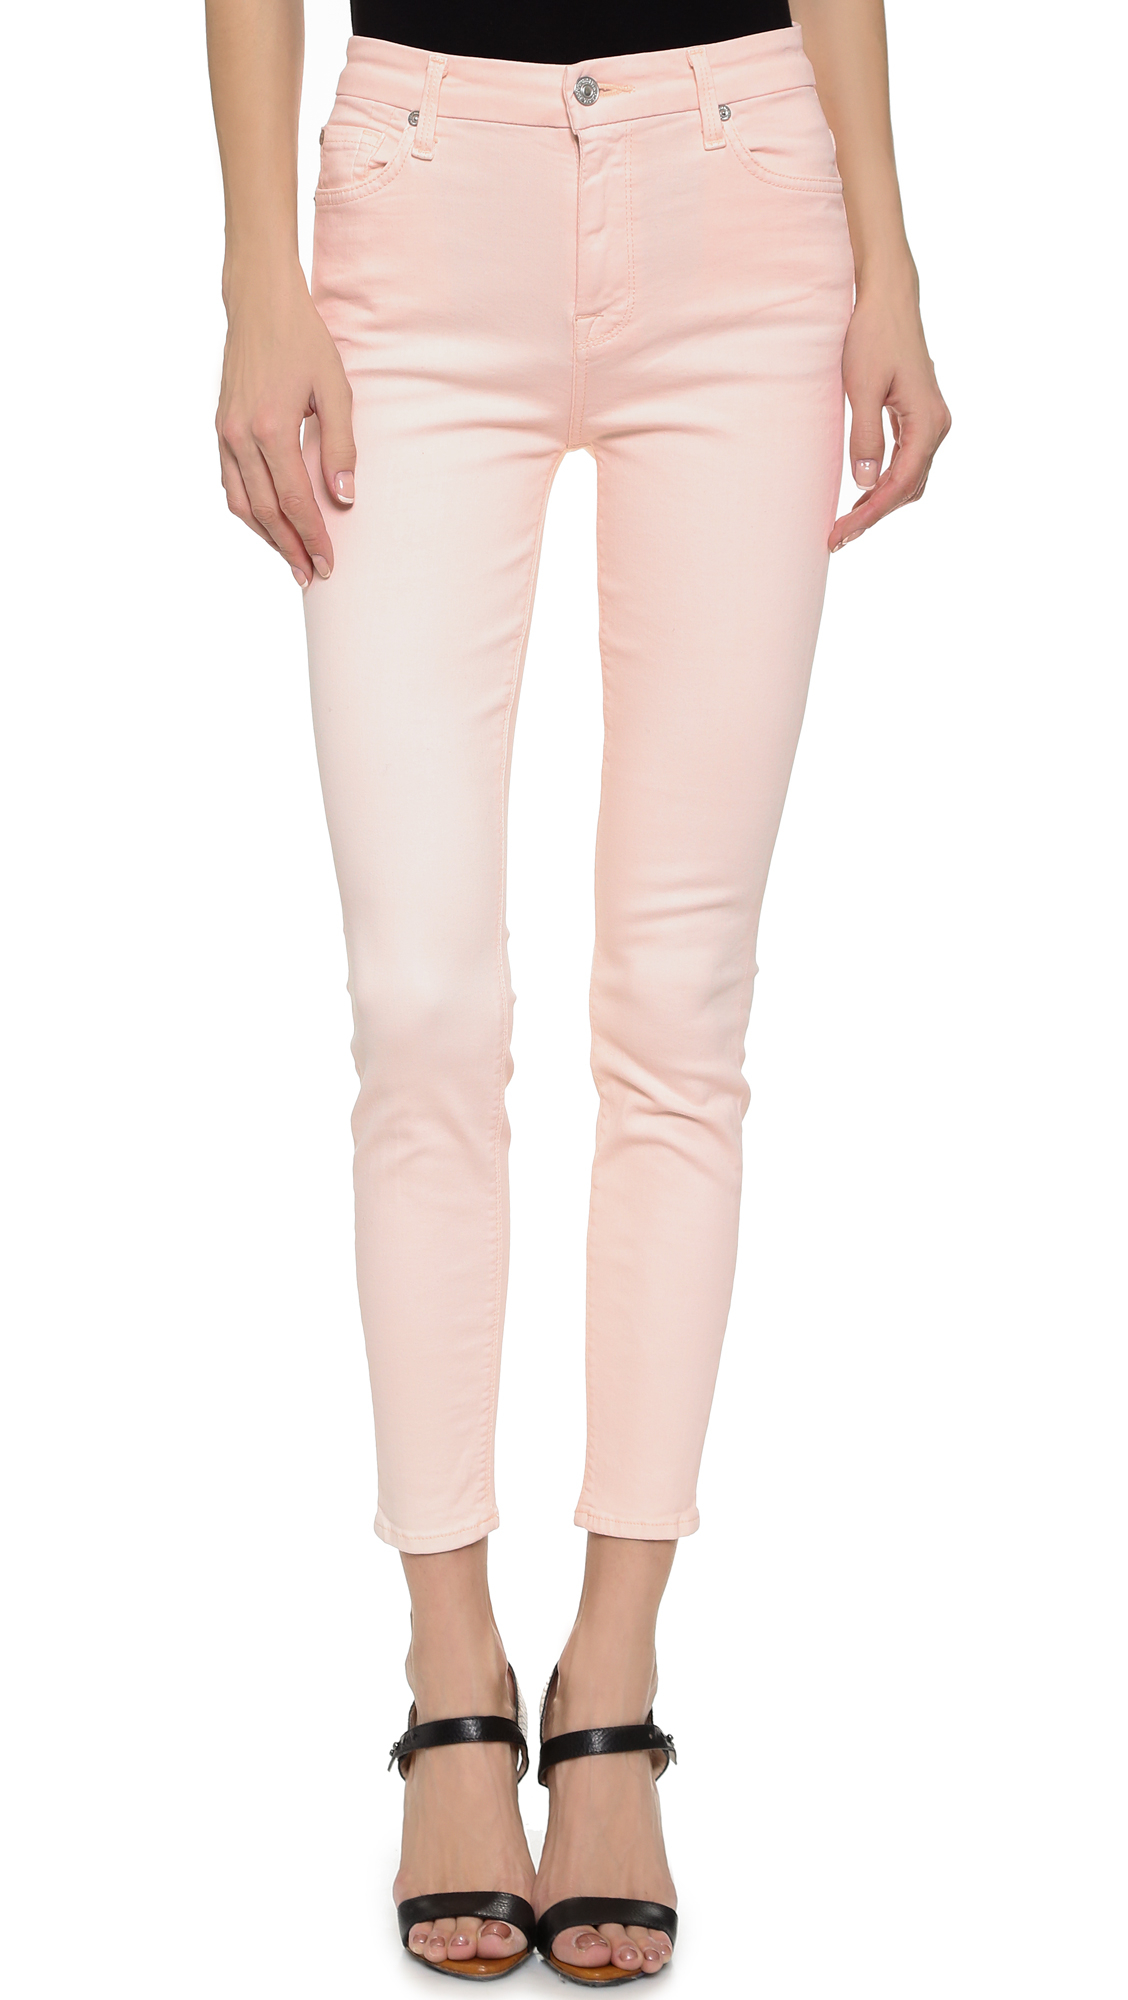 High Waisted Pink Skinny Jeans